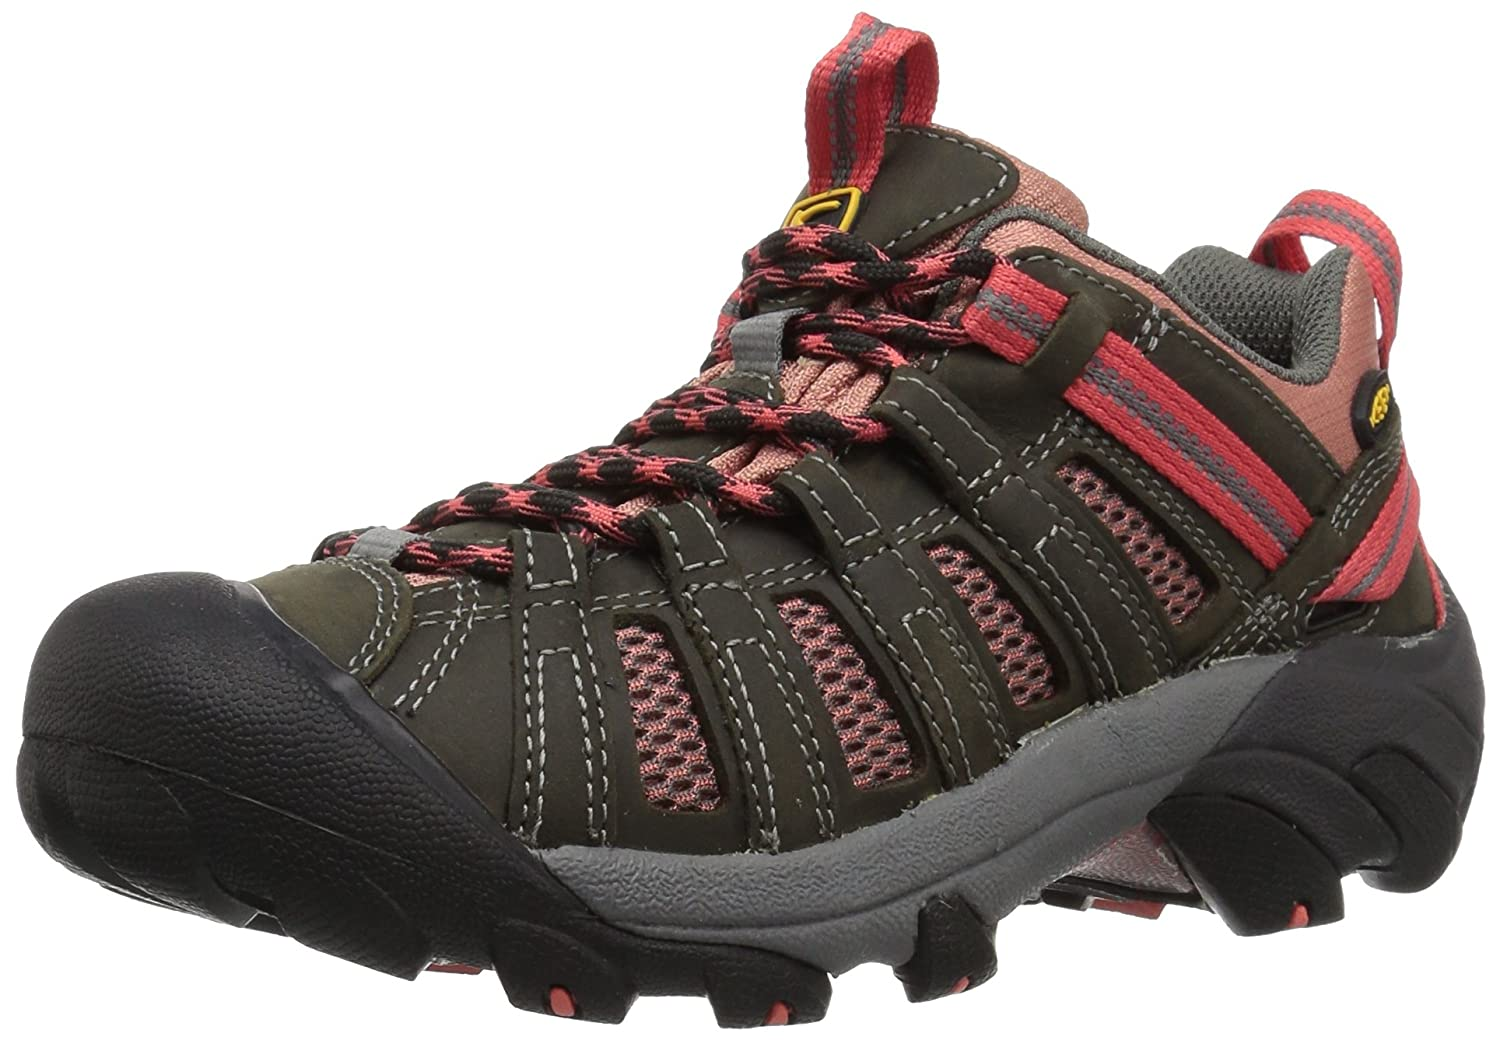 KEEN Women's Voyageur Hiking Shoe B01H8JWIHS 5 B(M) US|Raven/Rose Dawn